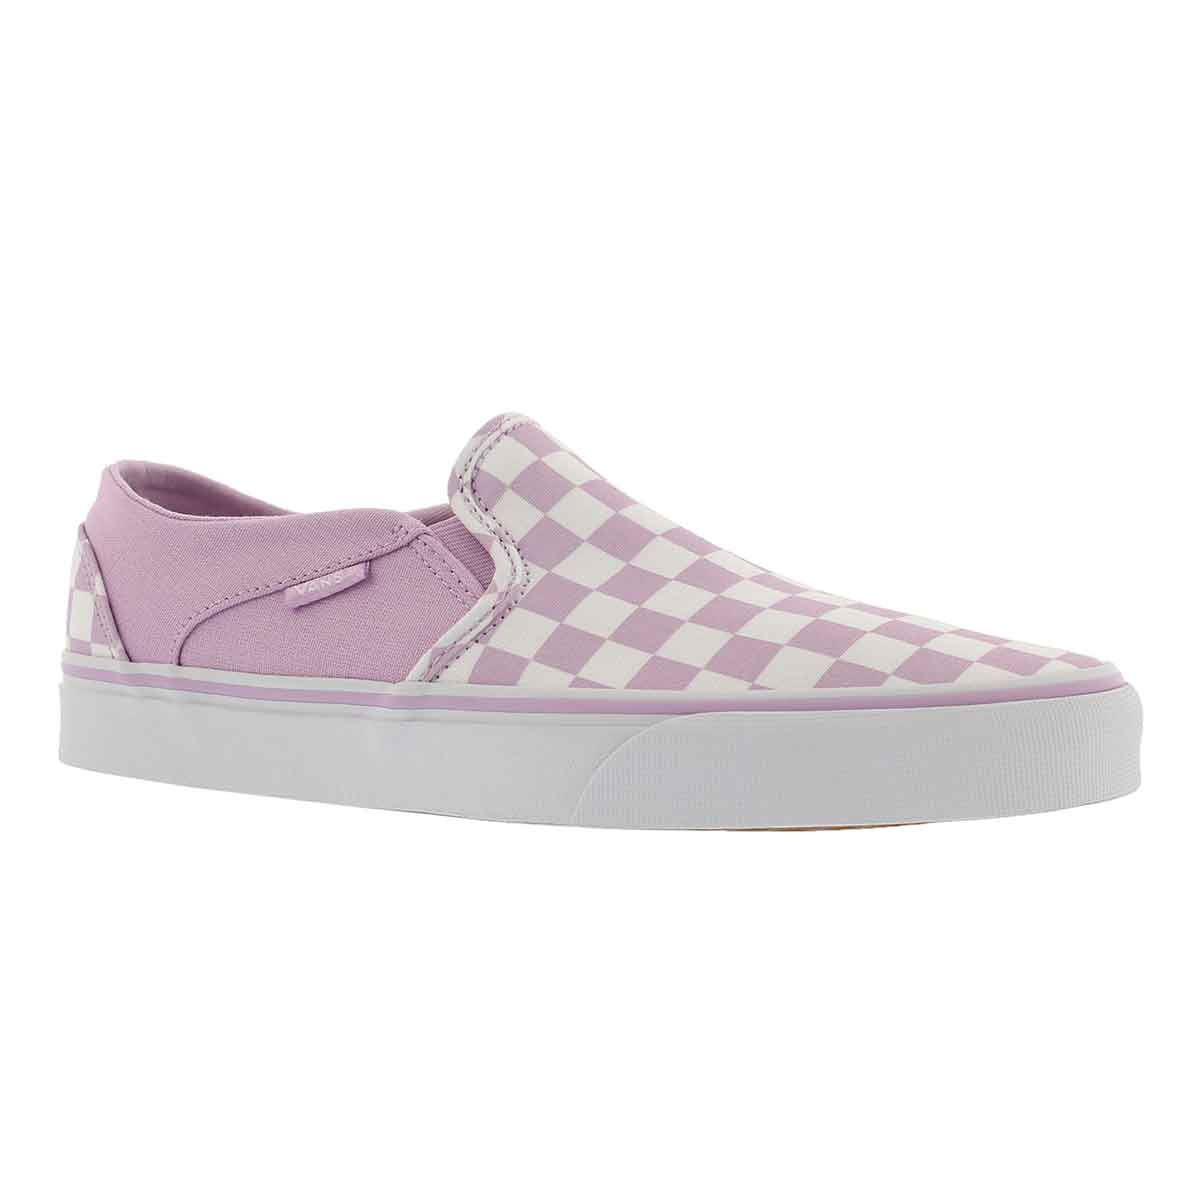 Women's ASHER lilac/wht checkered slip ons